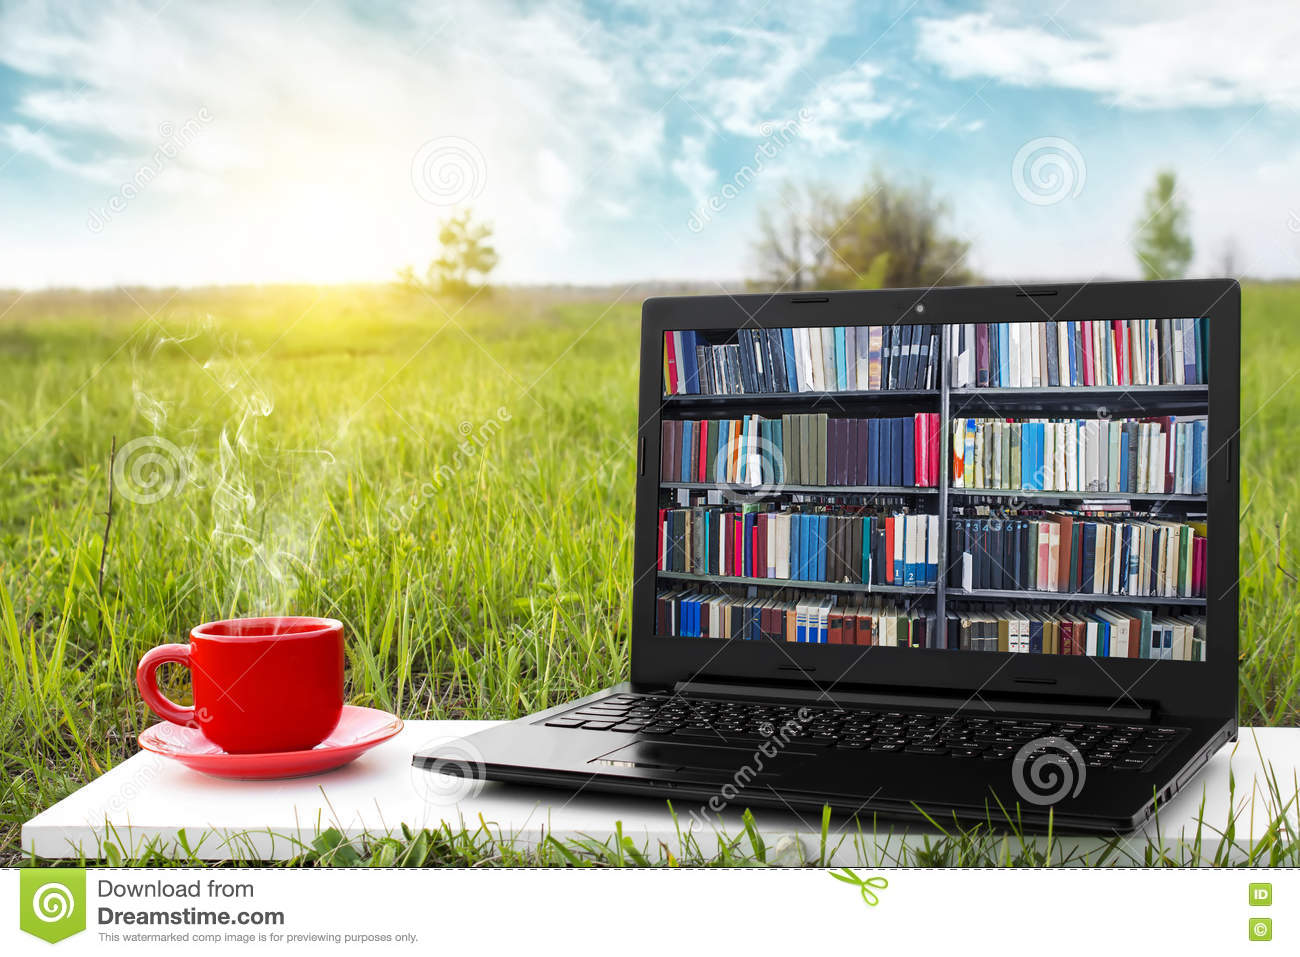 Laptop And Cup Of Hot Coffee On The Background Picturesque Nature Outdoor Office E Book Library Concept Internet Books Store Stock Photo Image Of College Banner 71276234